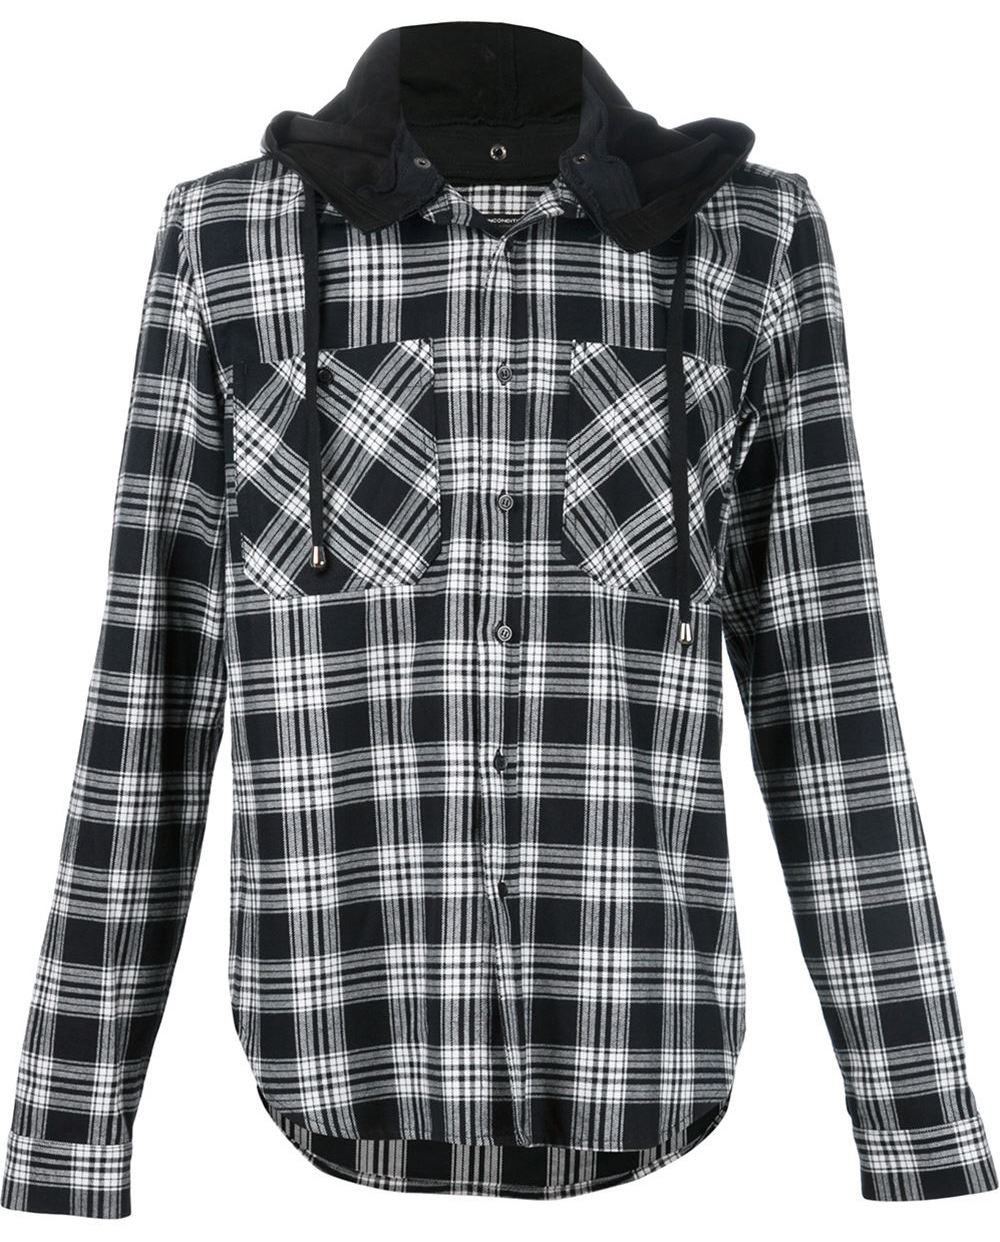 Unconditional-plaid-hooded-shirt-jacket